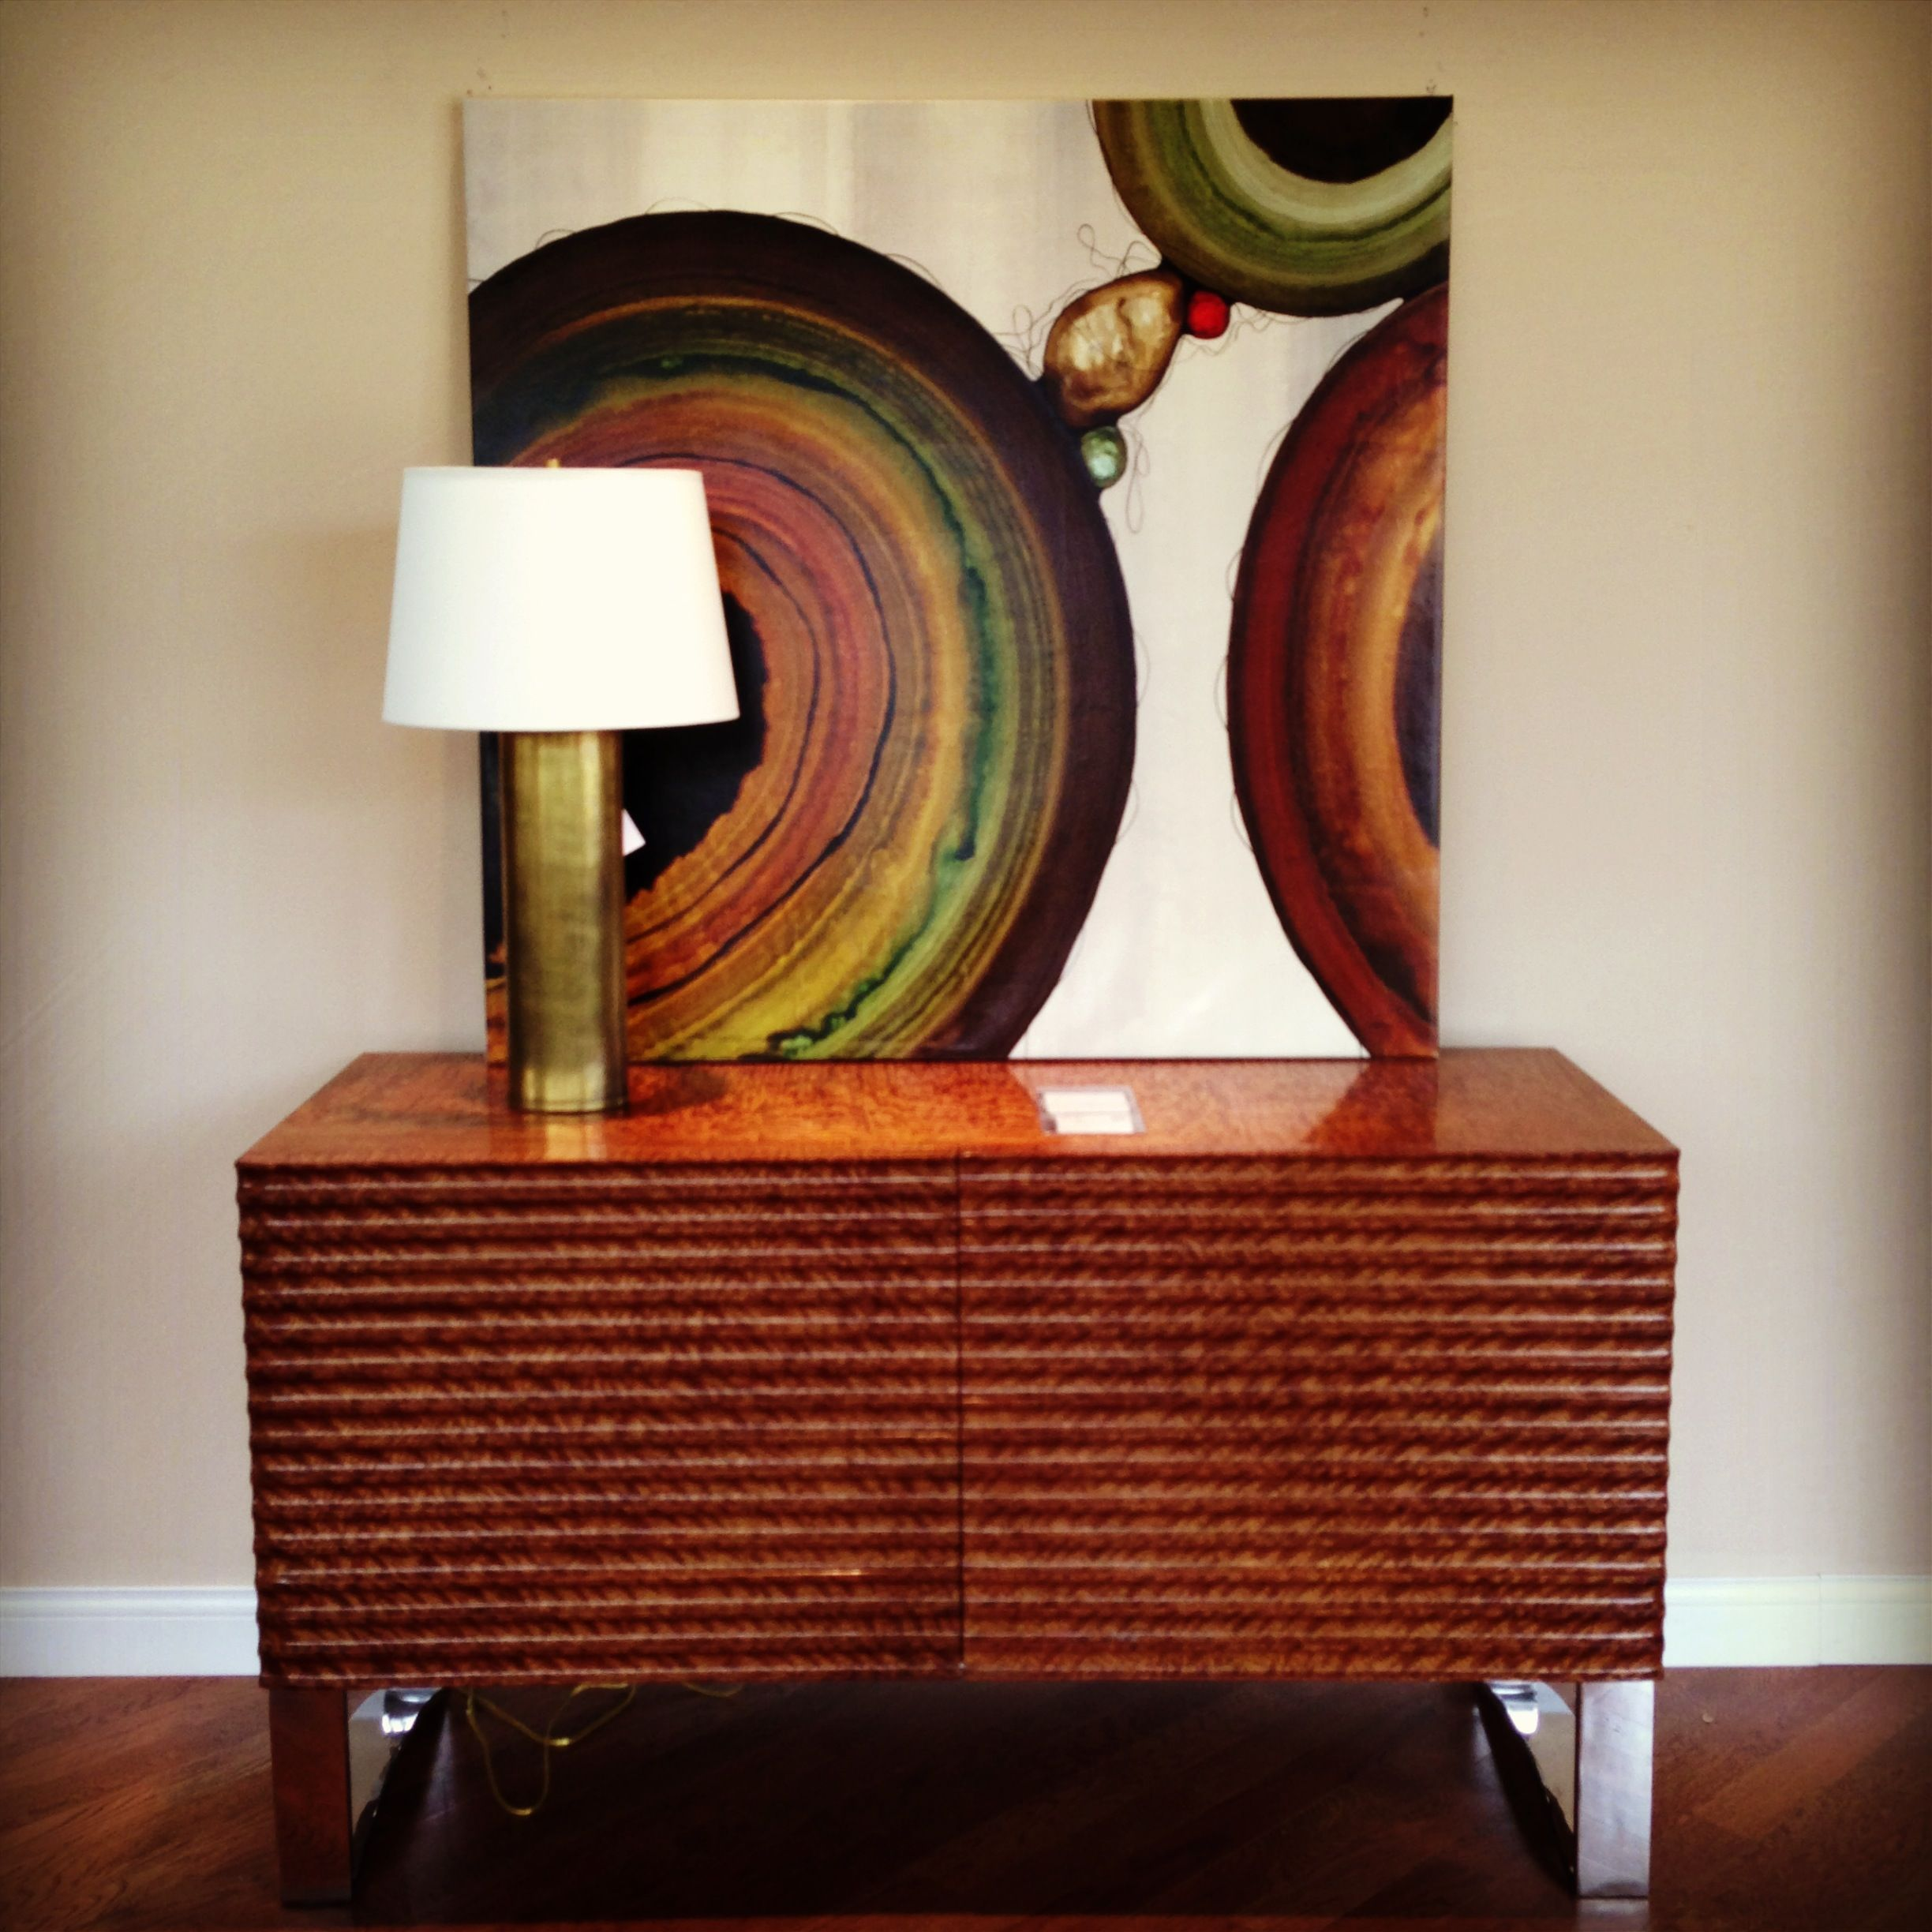 by alexander for showroom theodore artwork keno pin brothers furniture console